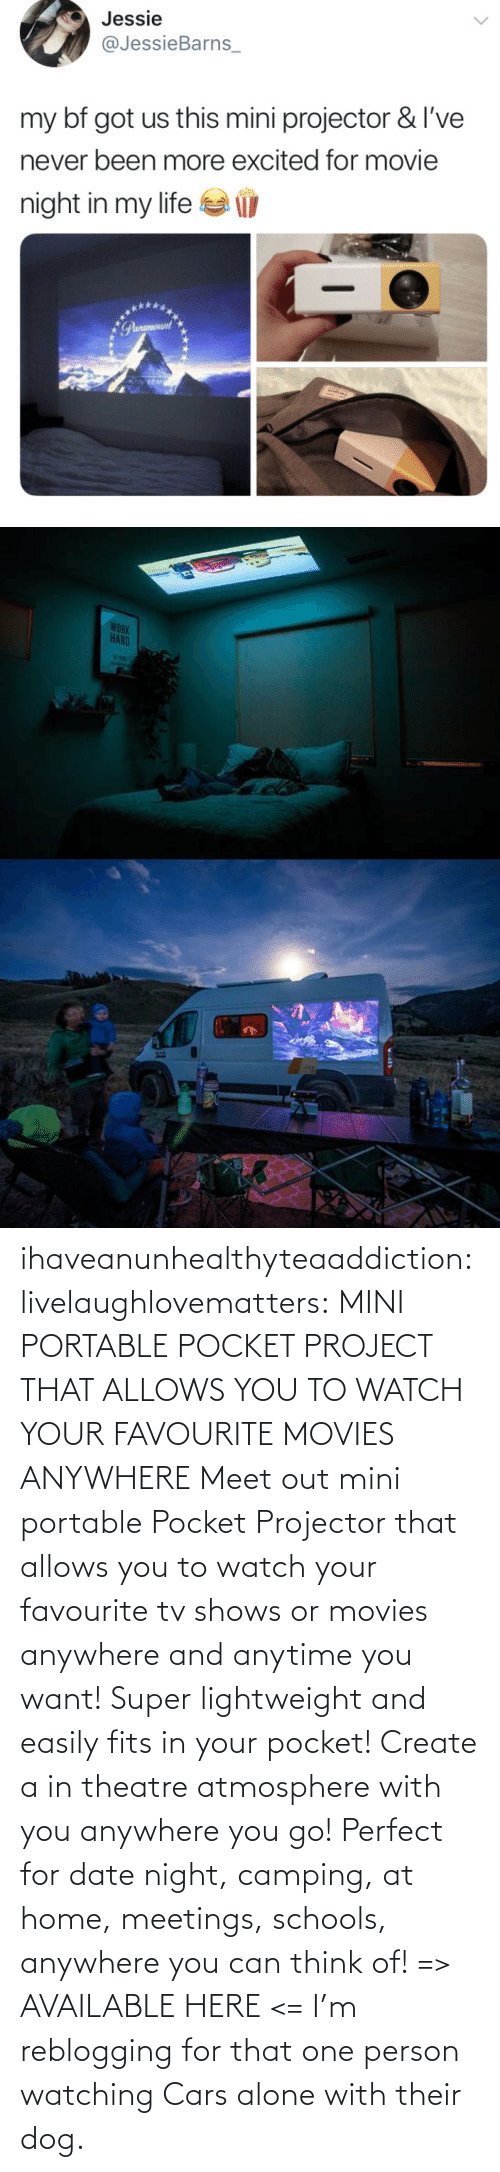 super: ihaveanunhealthyteaaddiction: livelaughlovematters:  MINI PORTABLE POCKET PROJECT THAT ALLOWS YOU TO WATCH YOUR FAVOURITE MOVIES ANYWHERE Meet out mini portable Pocket Projector that allows you to watch your favourite tv shows or movies anywhere and anytime you want! Super lightweight and easily fits in your pocket! Create a in theatre atmosphere with you anywhere you go! Perfect for date night, camping, at home, meetings, schools, anywhere you can think of! => AVAILABLE HERE <=    I'm reblogging for that one person watching Cars alone with their dog.